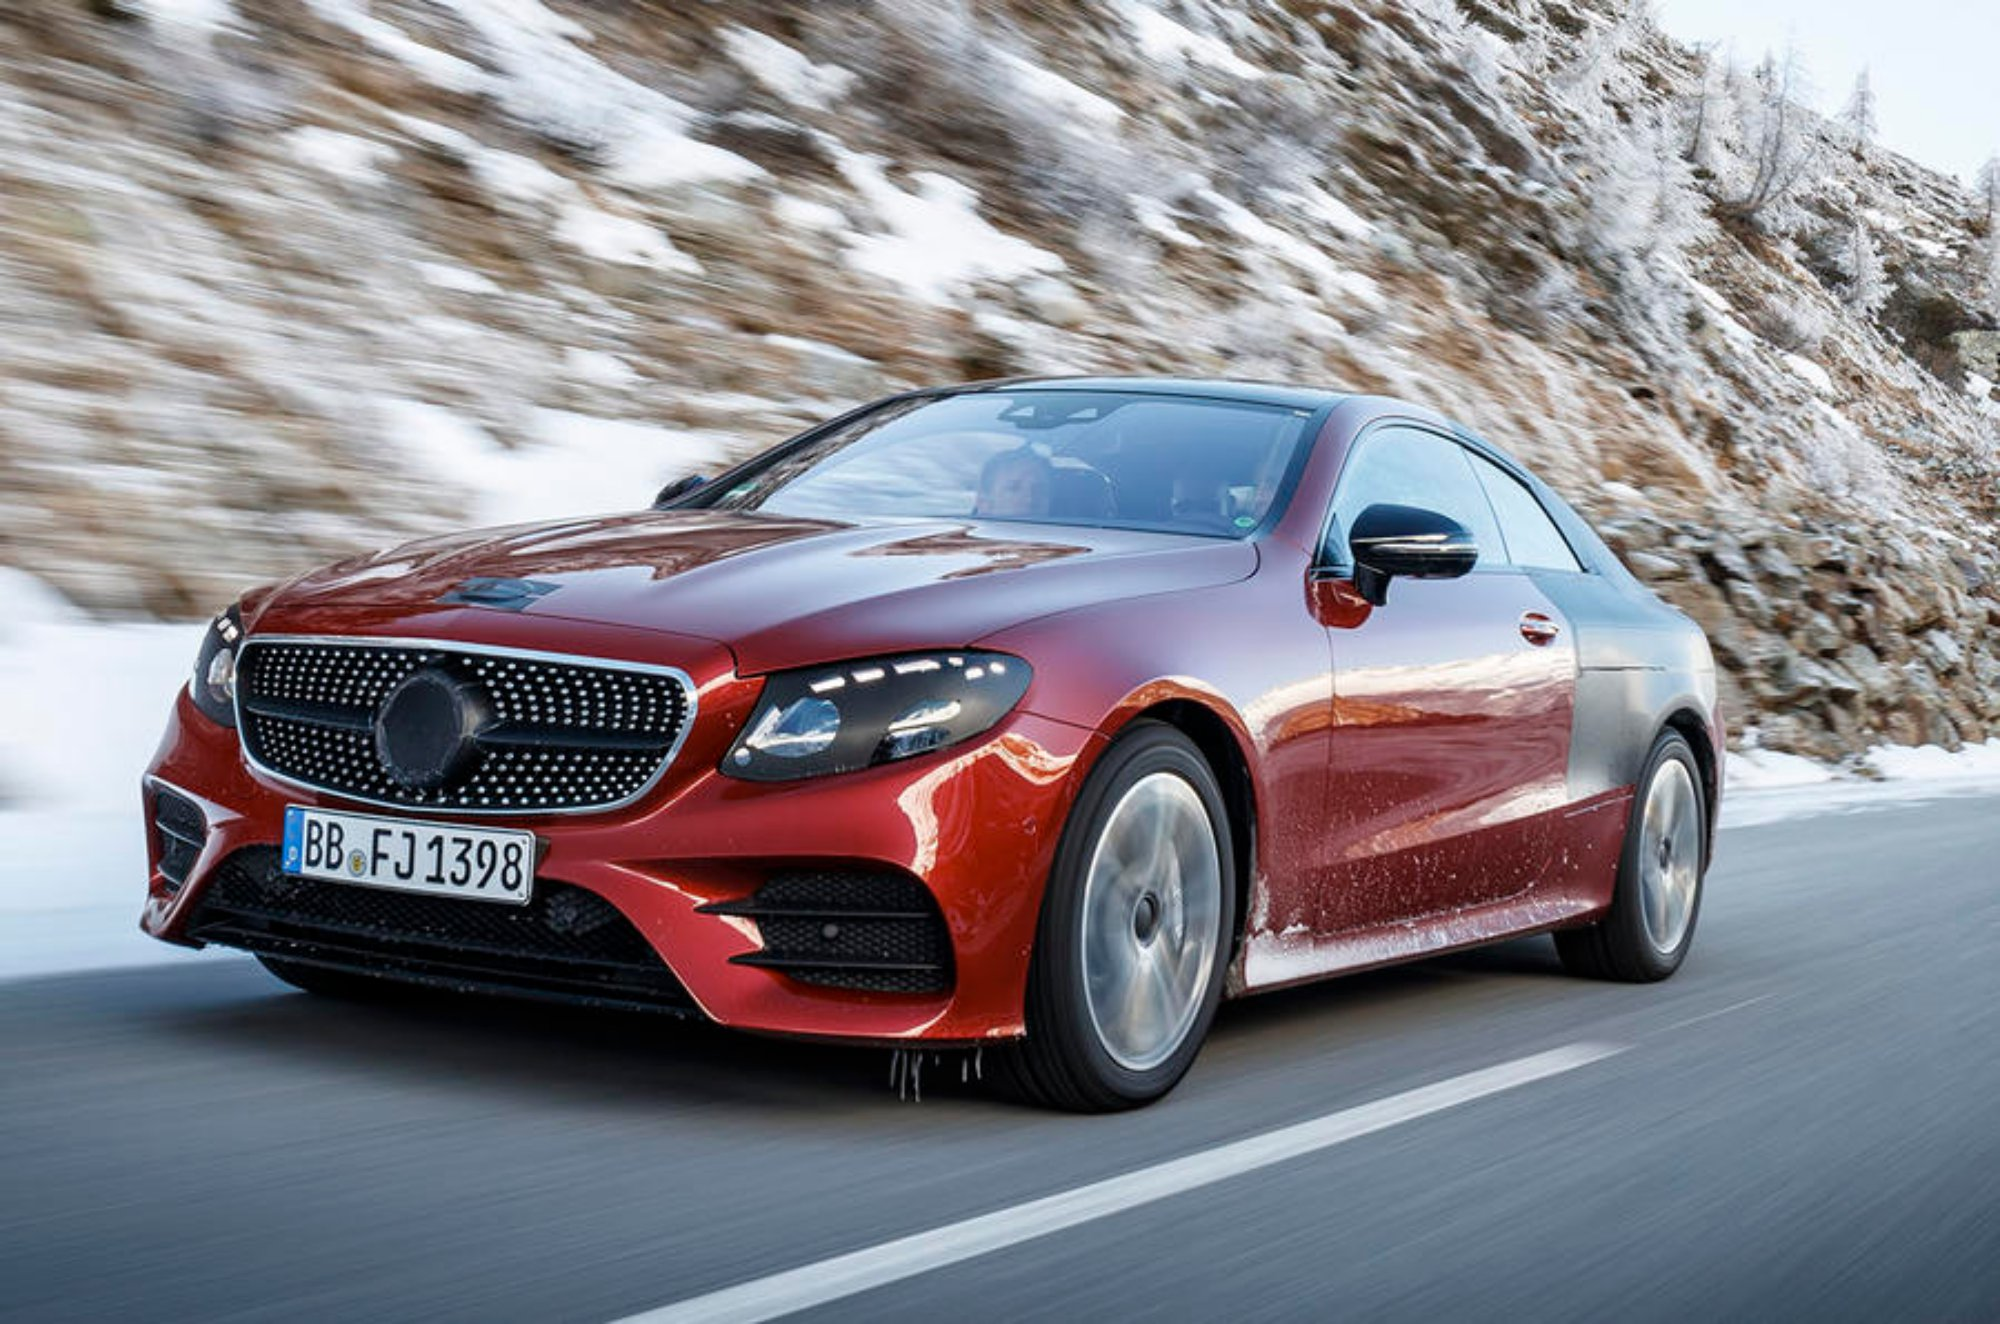 news mercedes benz teases 2018 e class coupe ahead of global debut. Black Bedroom Furniture Sets. Home Design Ideas